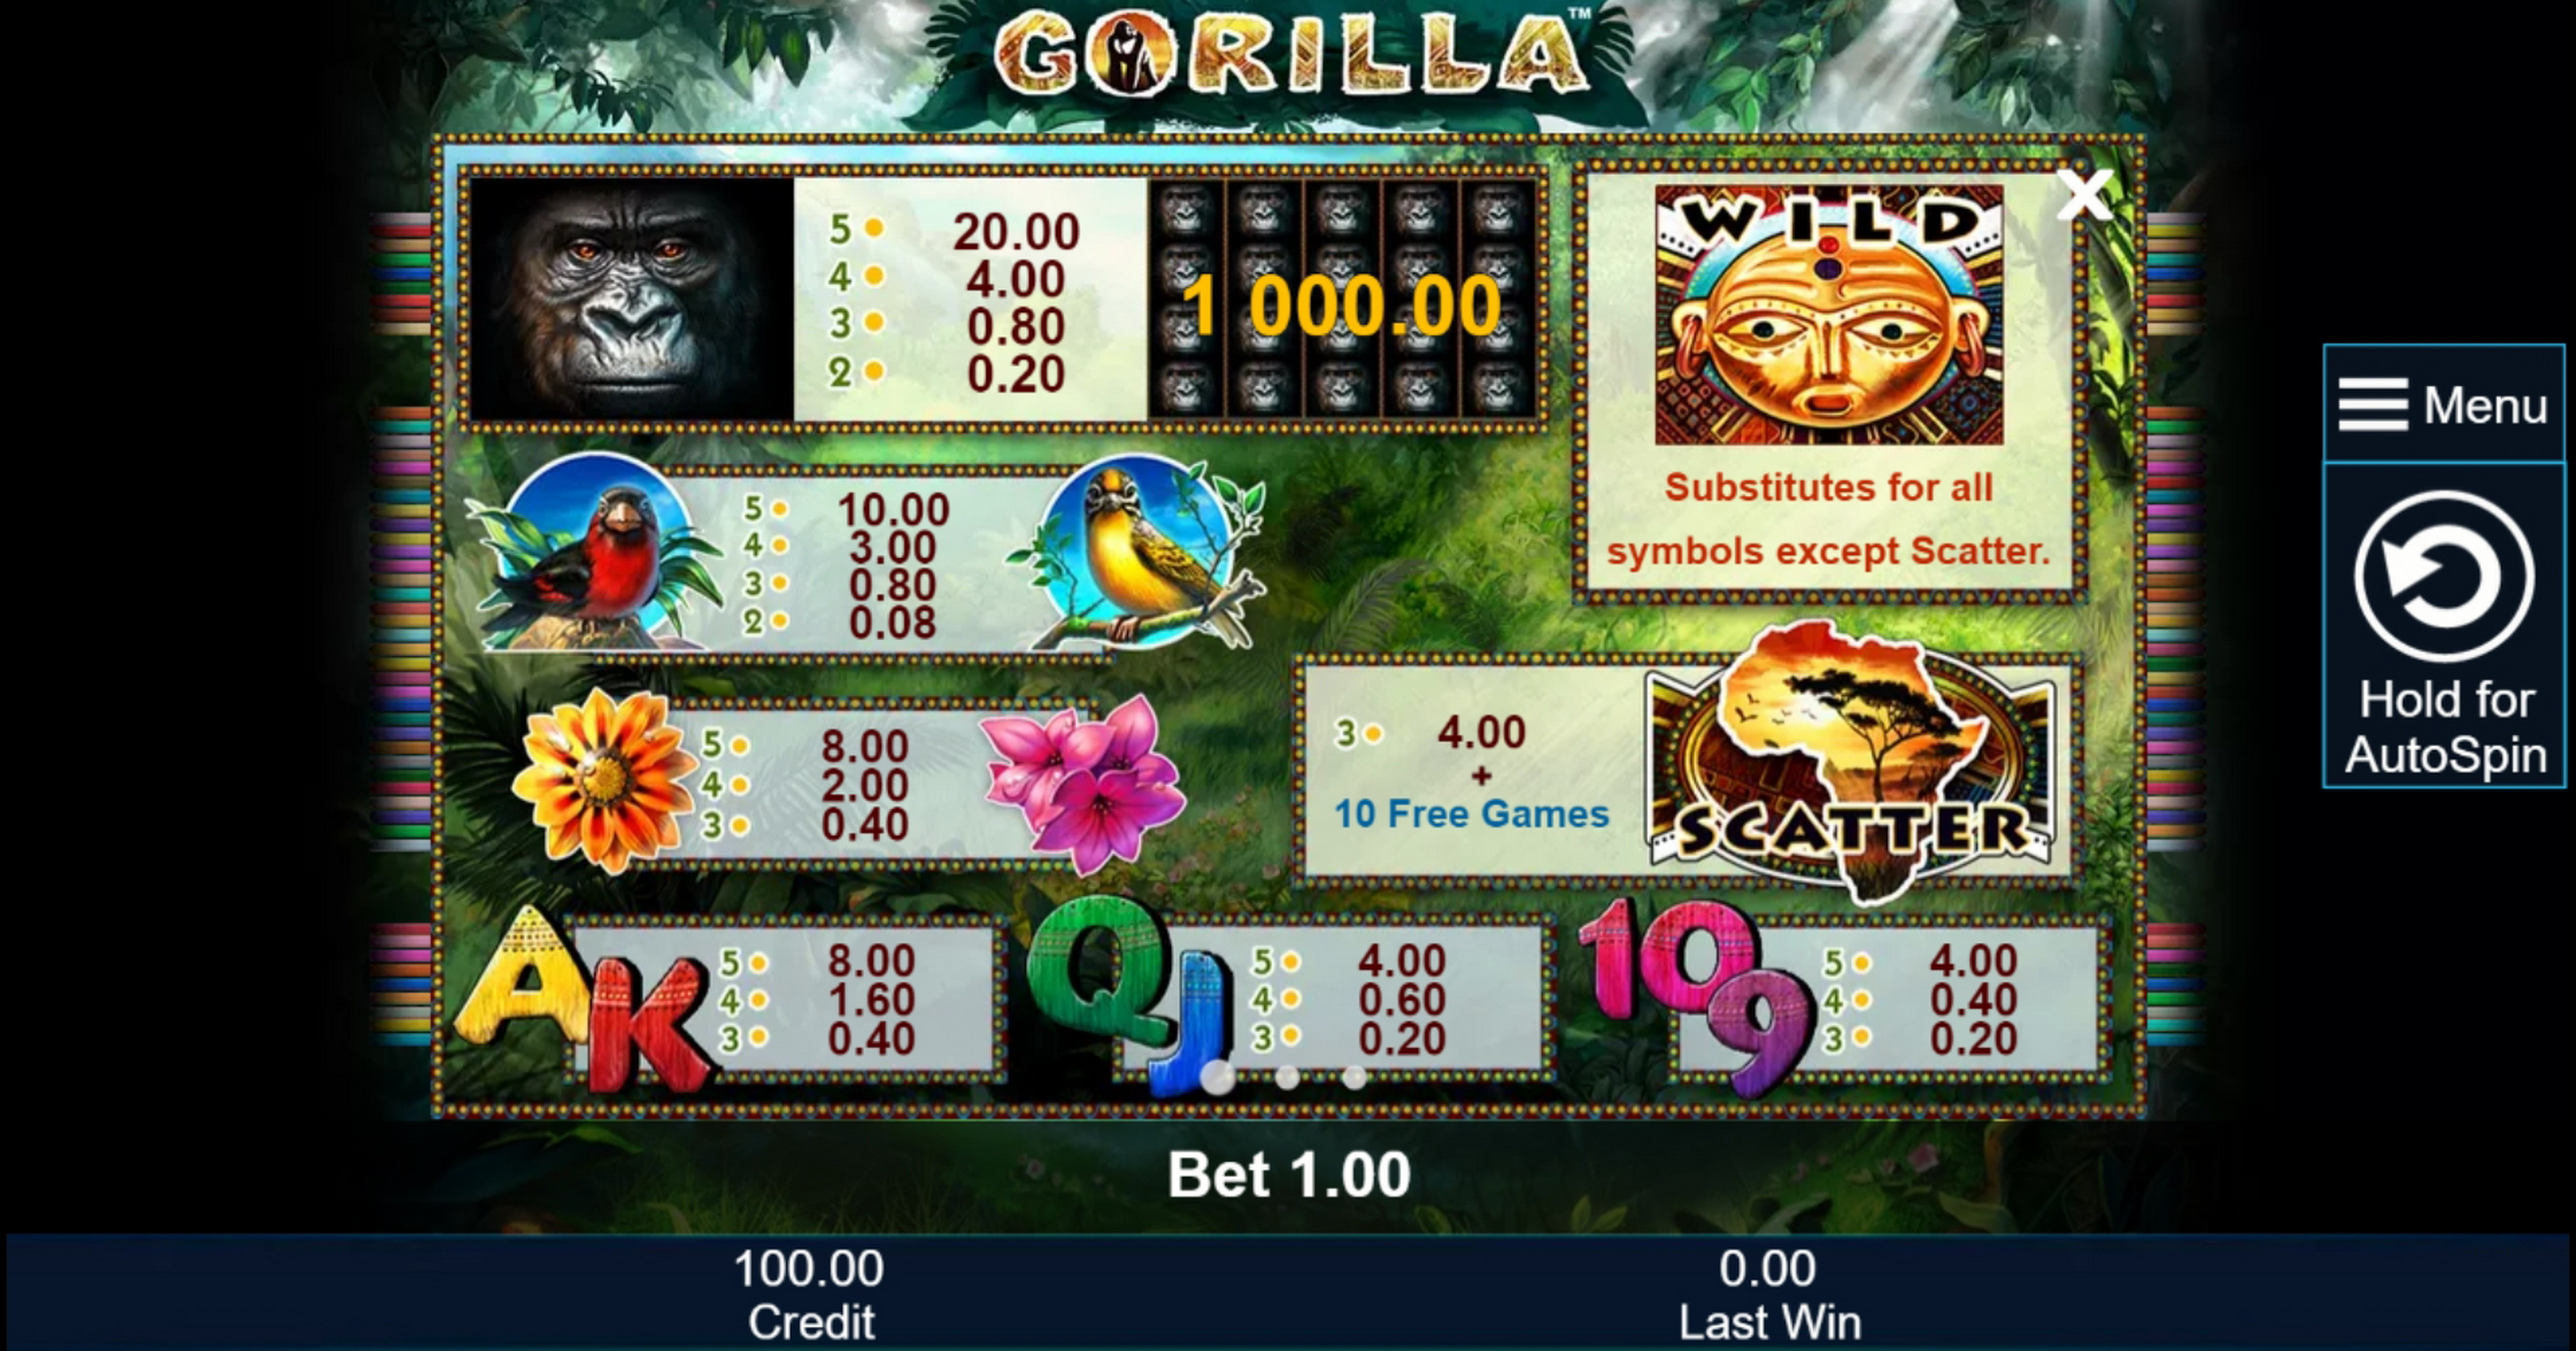 Info of Gorilla Slot Game by Greentube